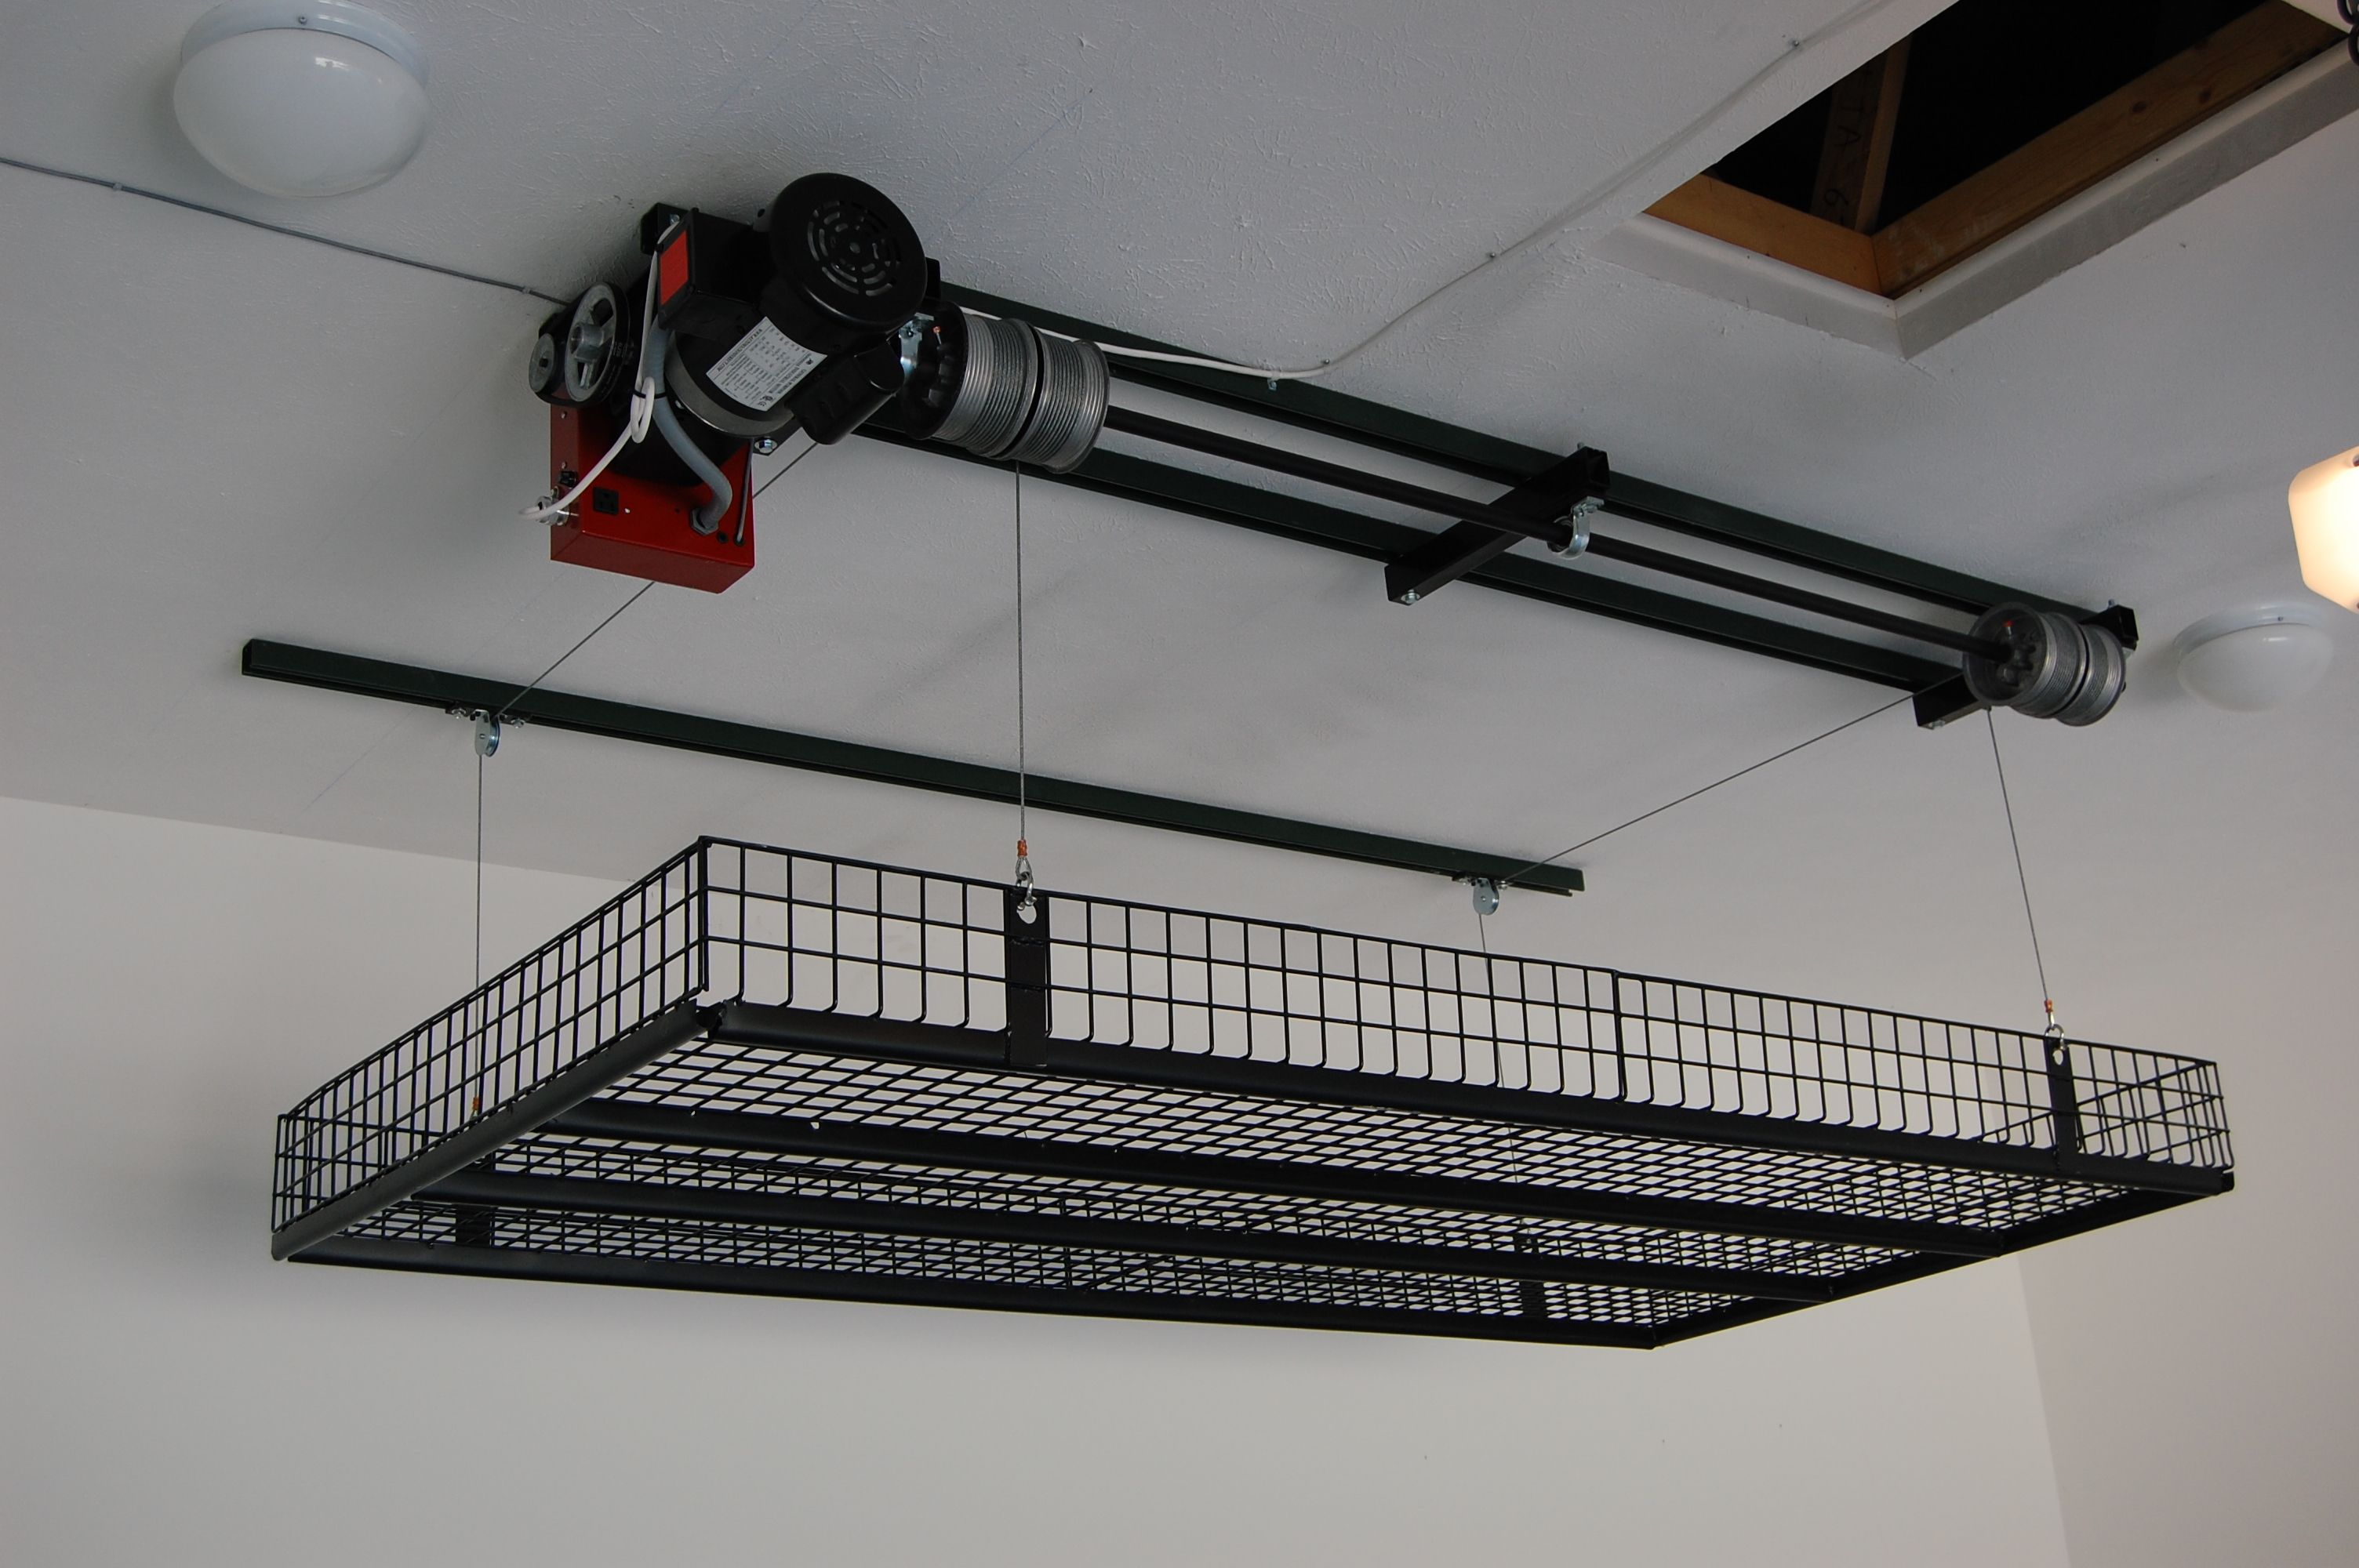 Storage Ideas Unique Liftunique Lift In 2019 Garage